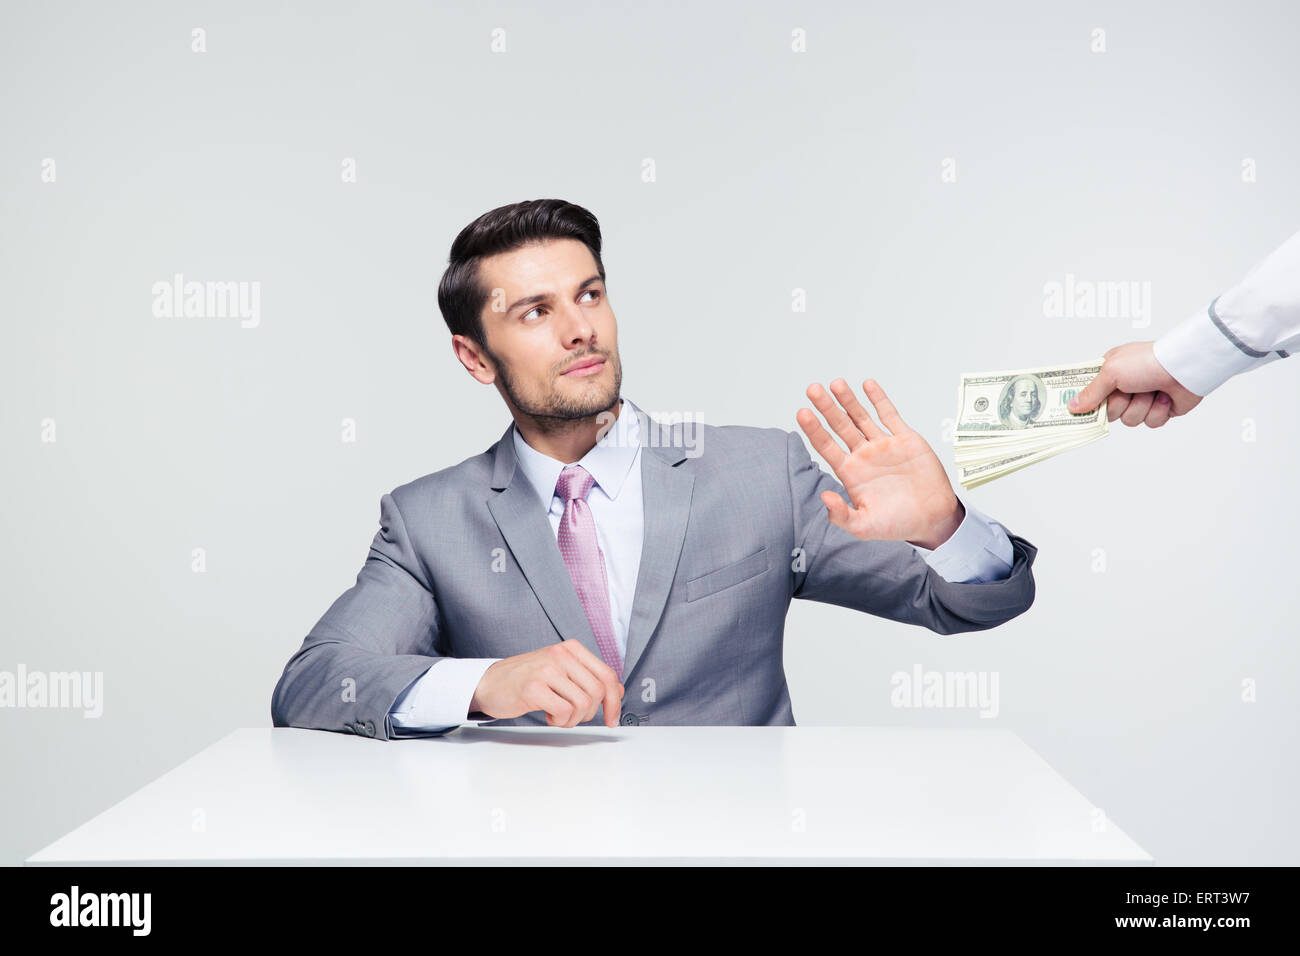 Businessman sitting at the table and gesturing stop sign while someone proposing money to him over gray background - Stock Image